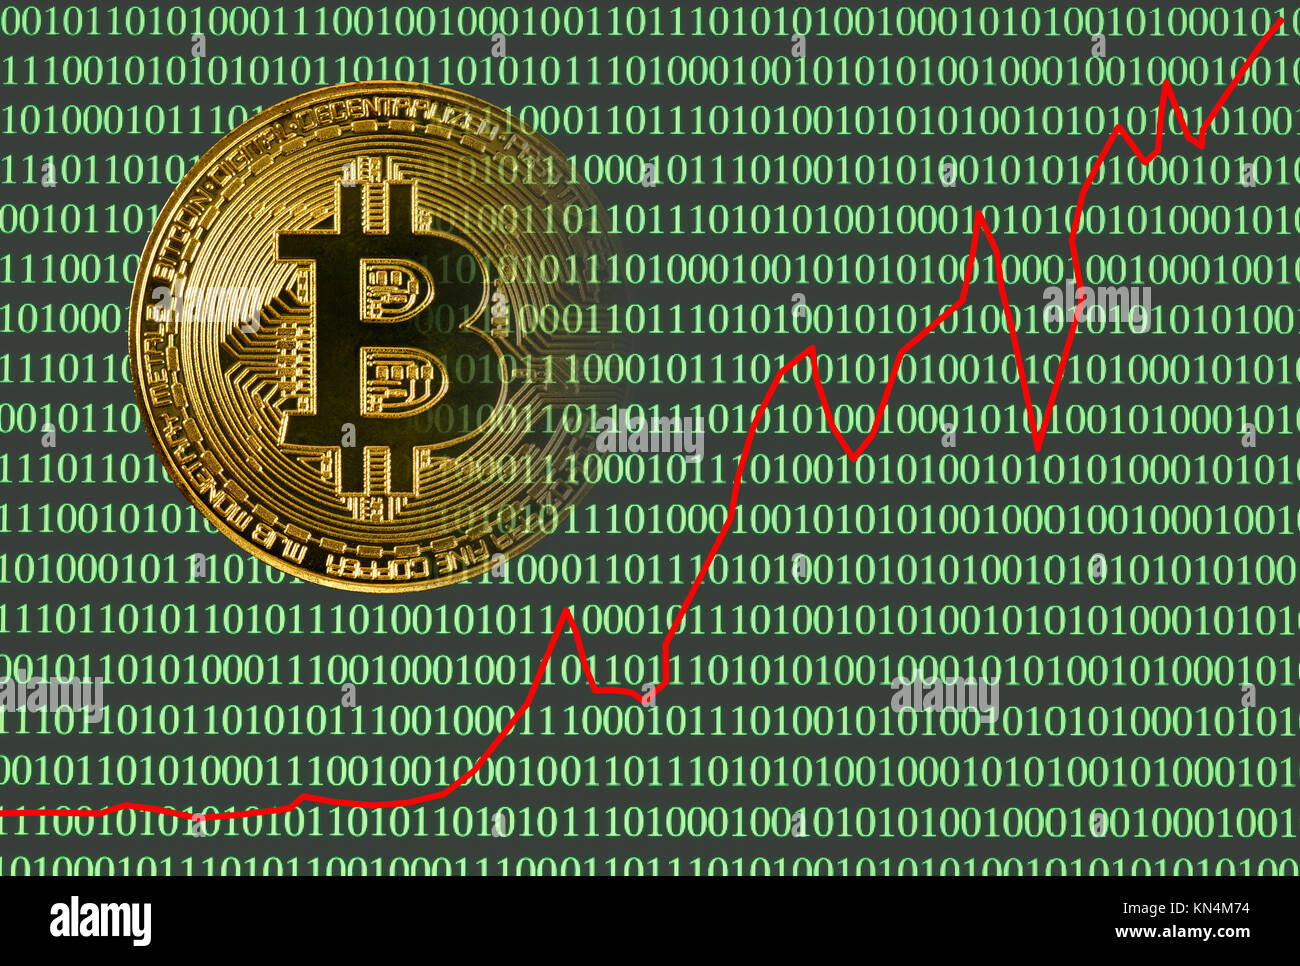 Symbol image Acting course digital currency, golden physical coin bitcoin laptop with digital binary code - Stock Image